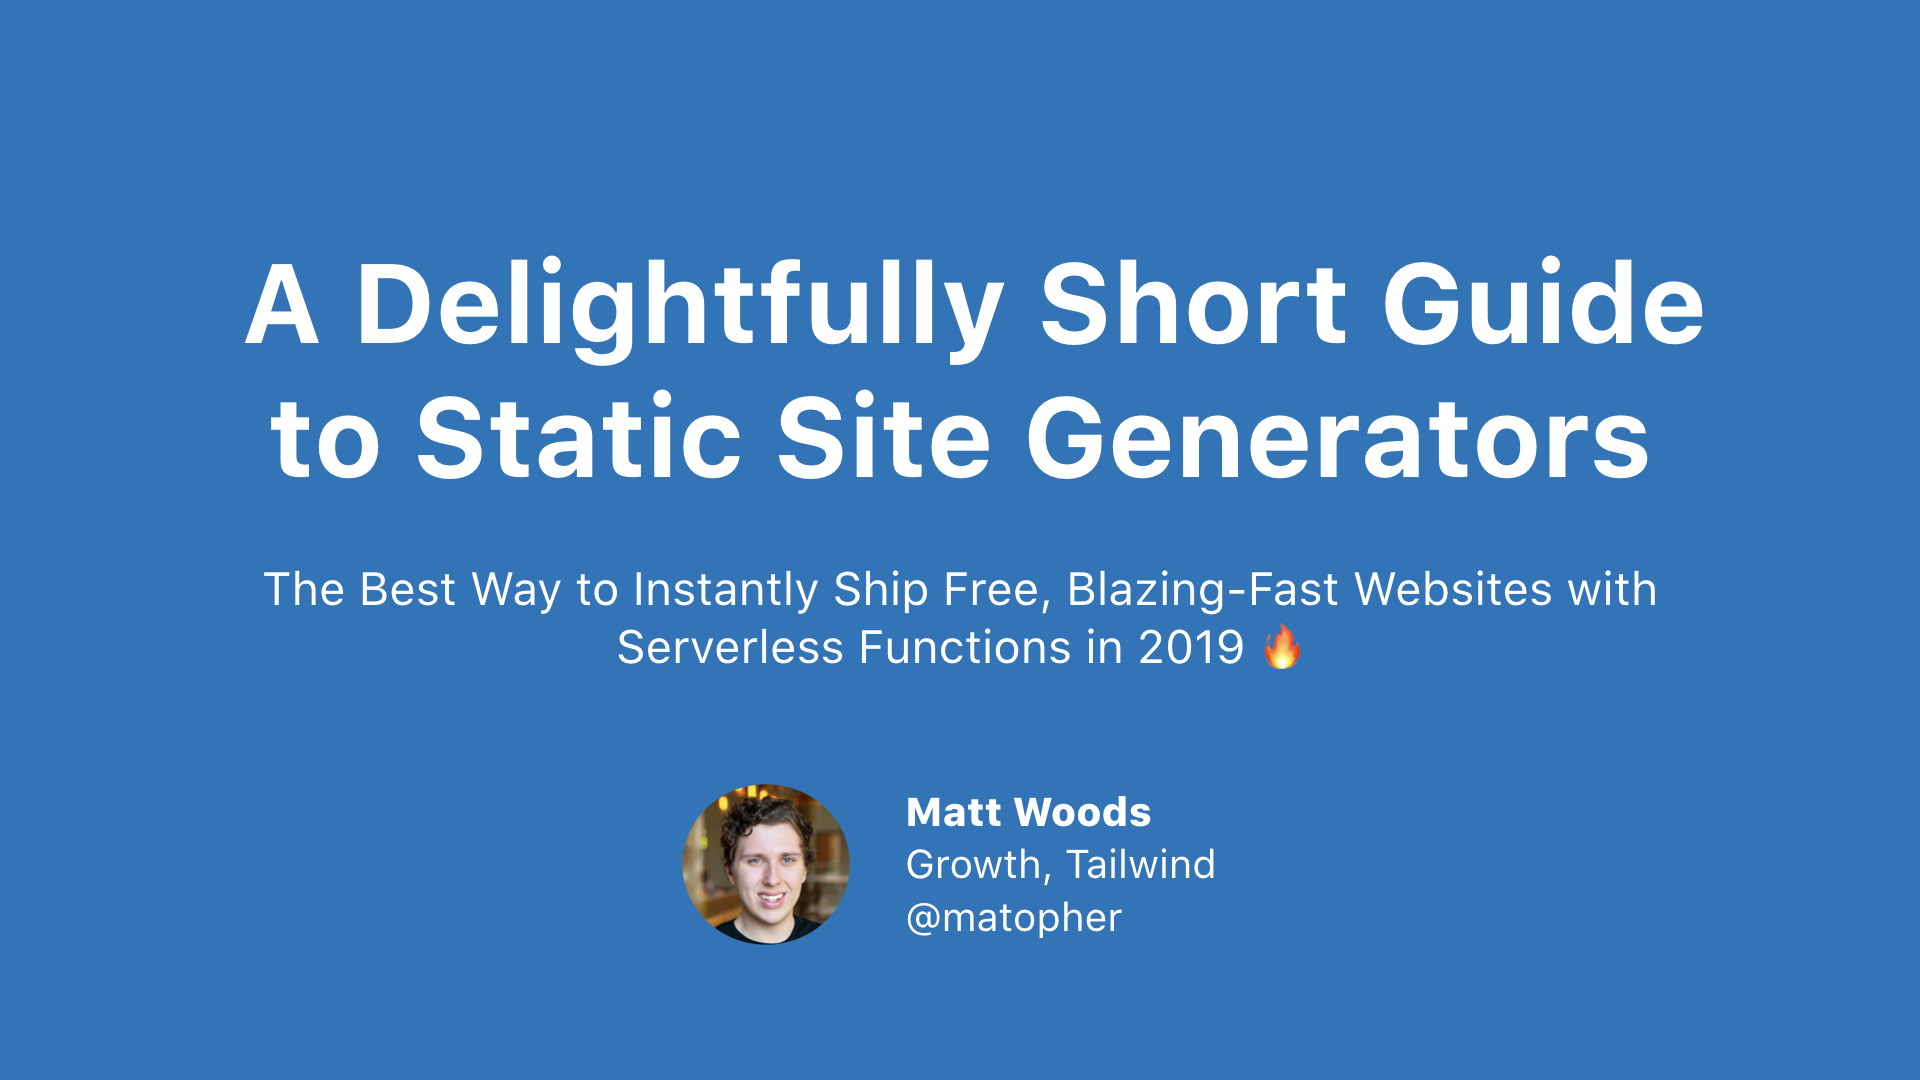 A Delightfully Short Guide to Static Site Generators cover image